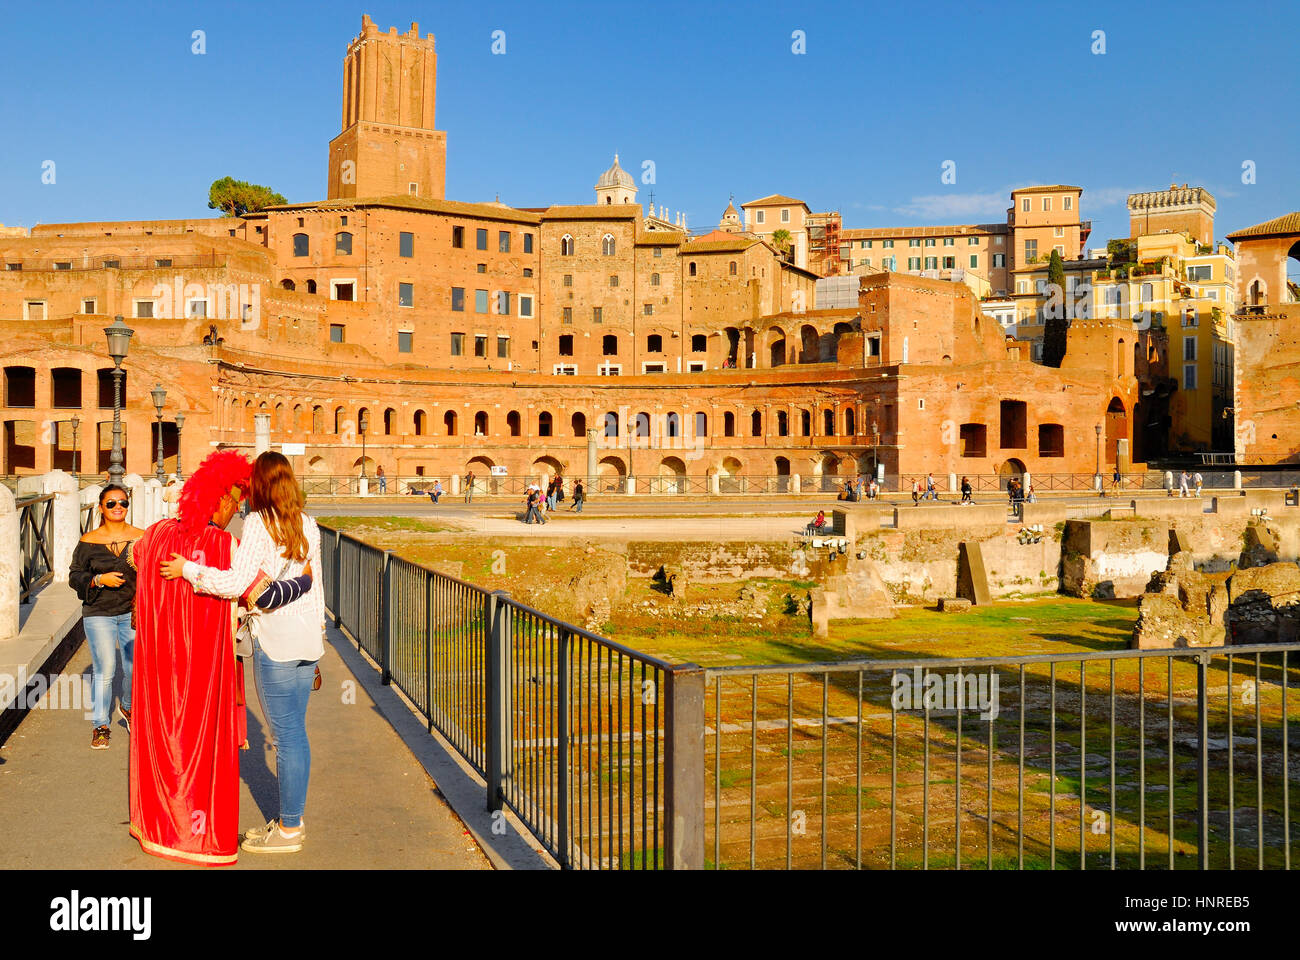 A MAN DISGUISED BY ROMAN CENTURION PERFORMS ON PAYMENT FOR TOURISTS, ROMAN FORUM, ROME, ITALY. - Stock Image